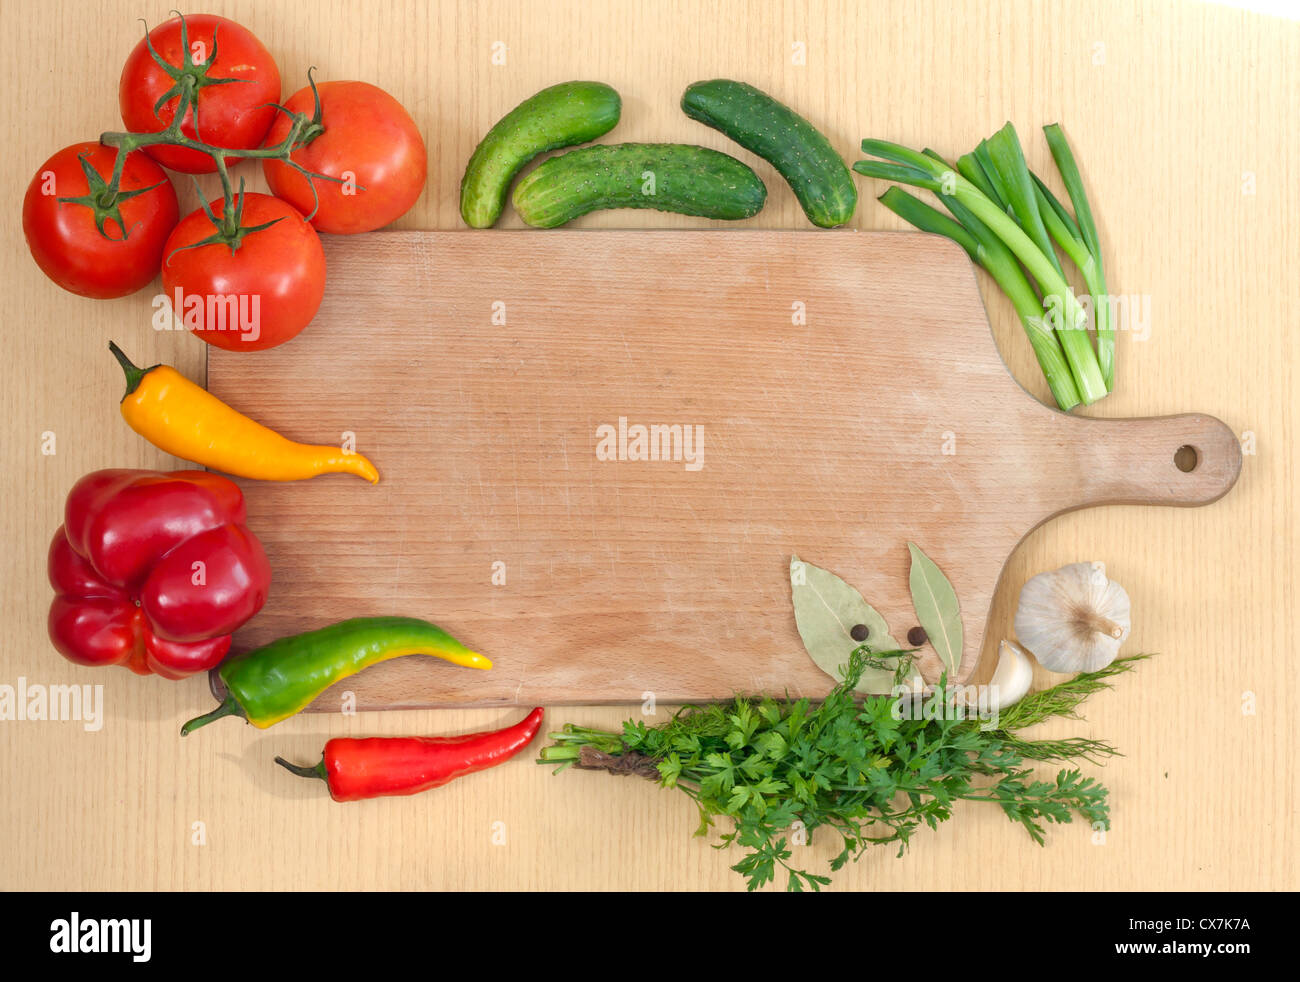 Stock Photo   Vegetables And Spices Border And Empty Cutting Board